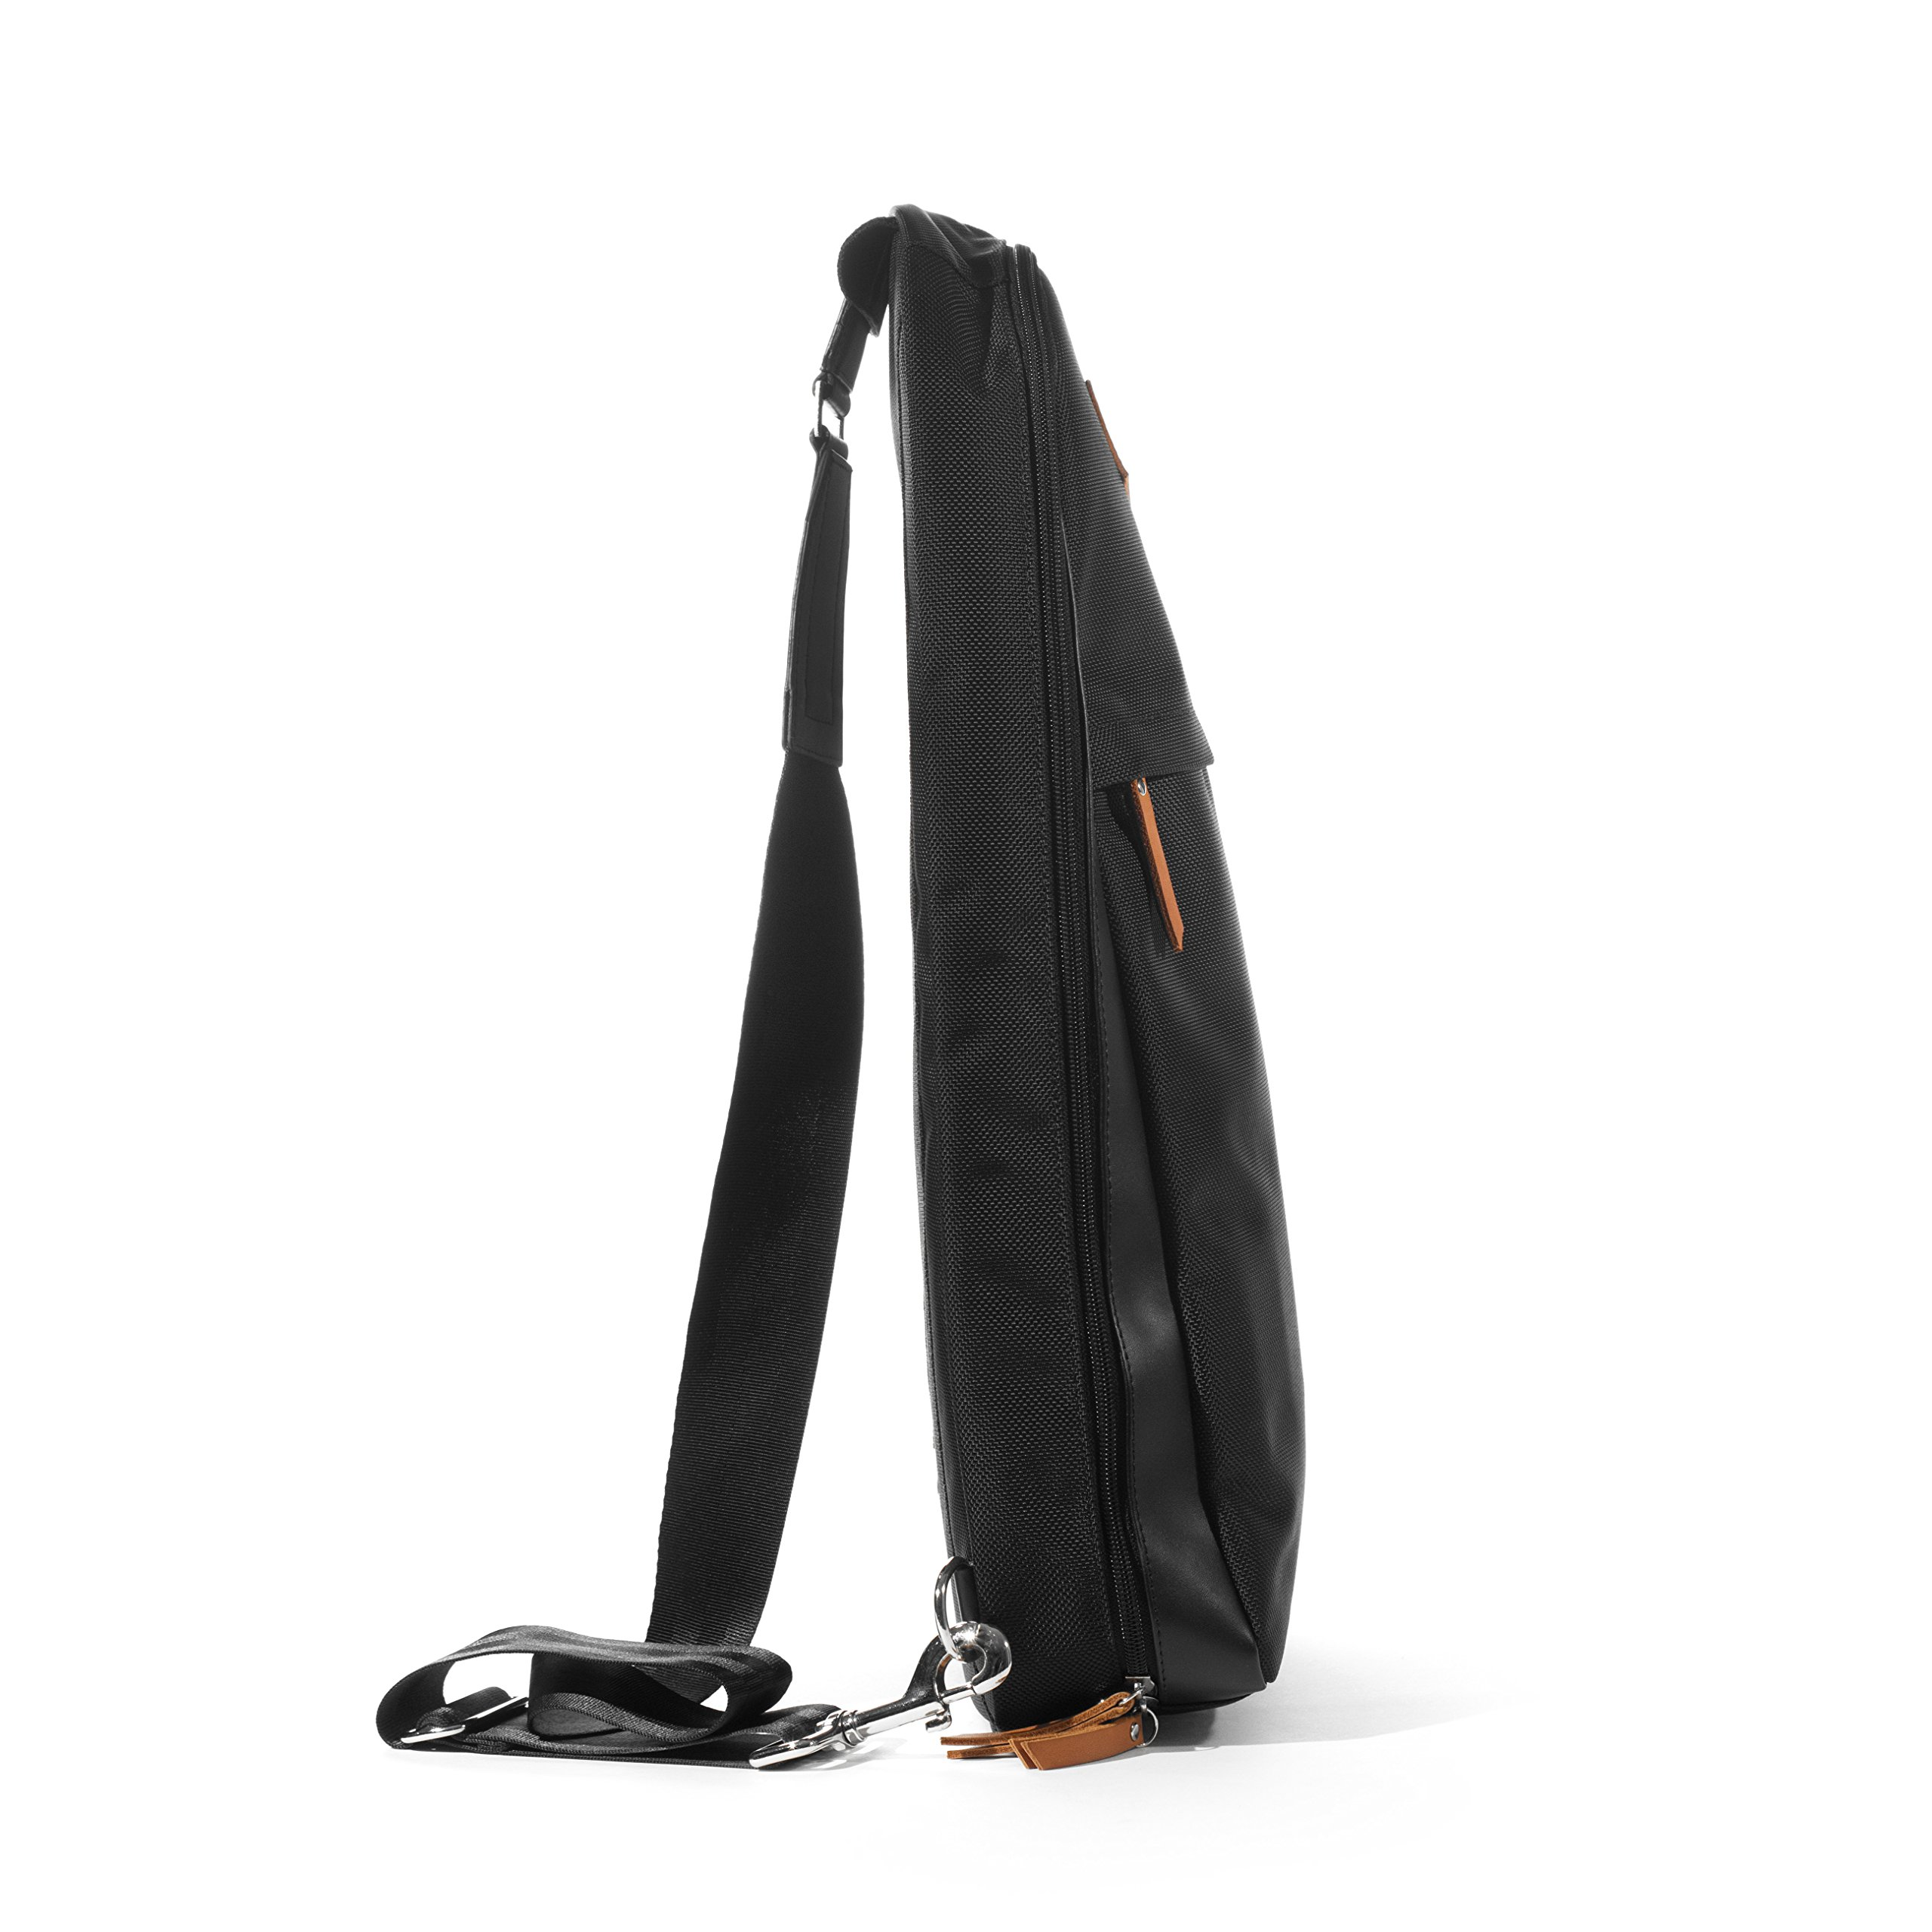 M(sqd) Roundsman Chef Knife Bag, Holds 17 Knives and Utensils with 3 Pockets for Tablet and Notebook by M(sqd) (Image #2)